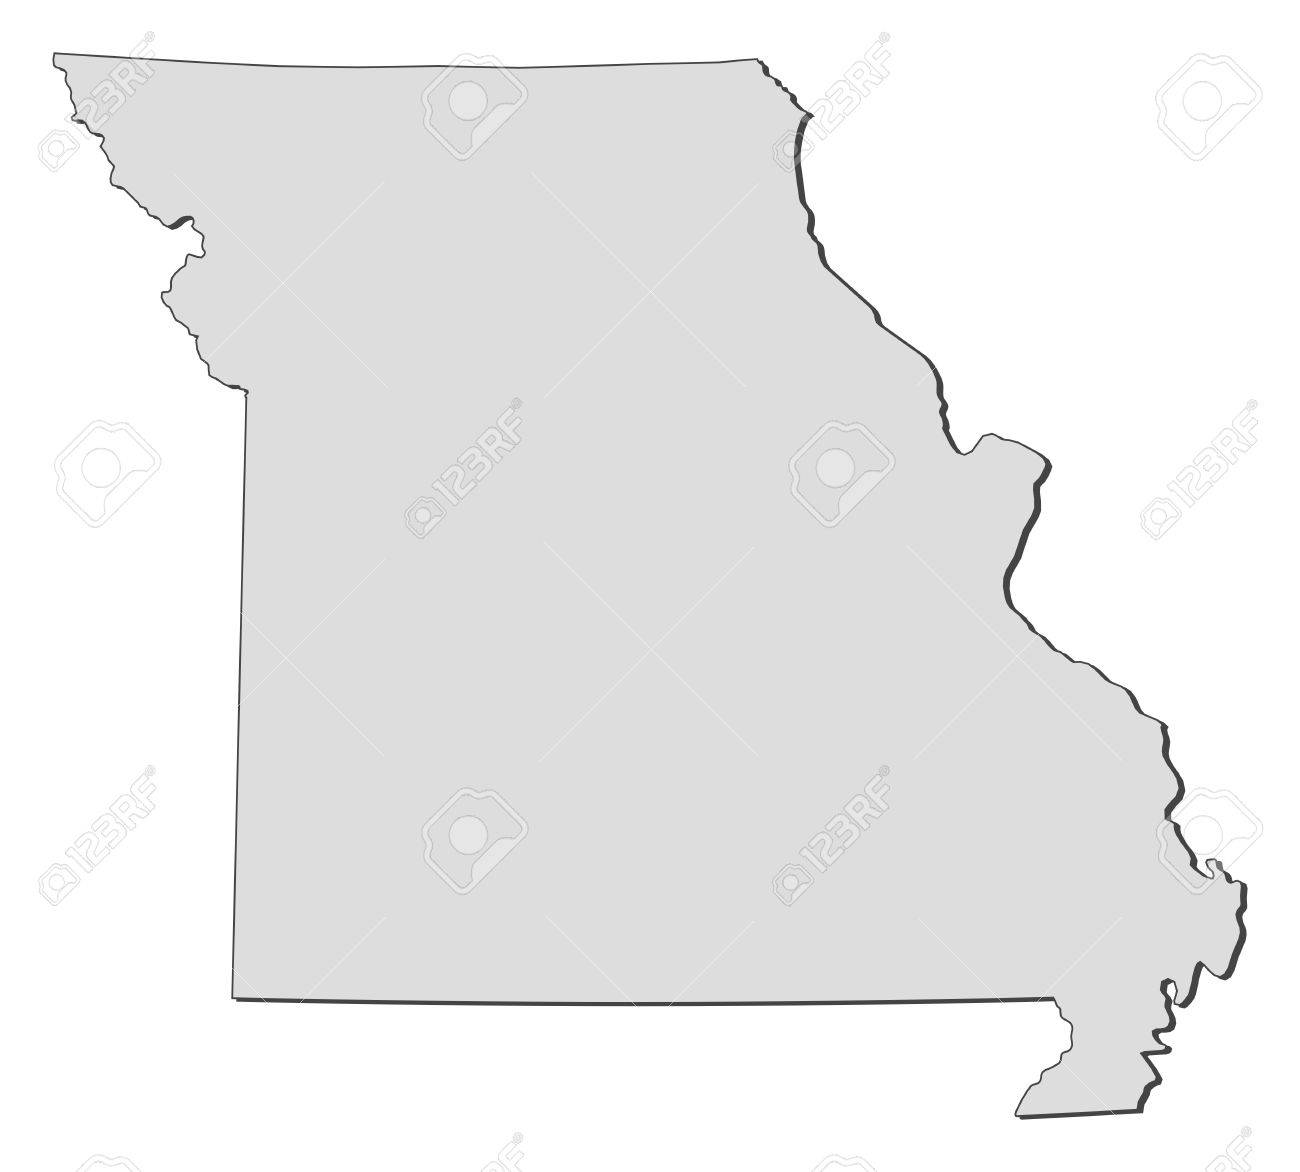 Map Of Missouri A State Of United States Royalty Free Cliparts - United states map of missouri